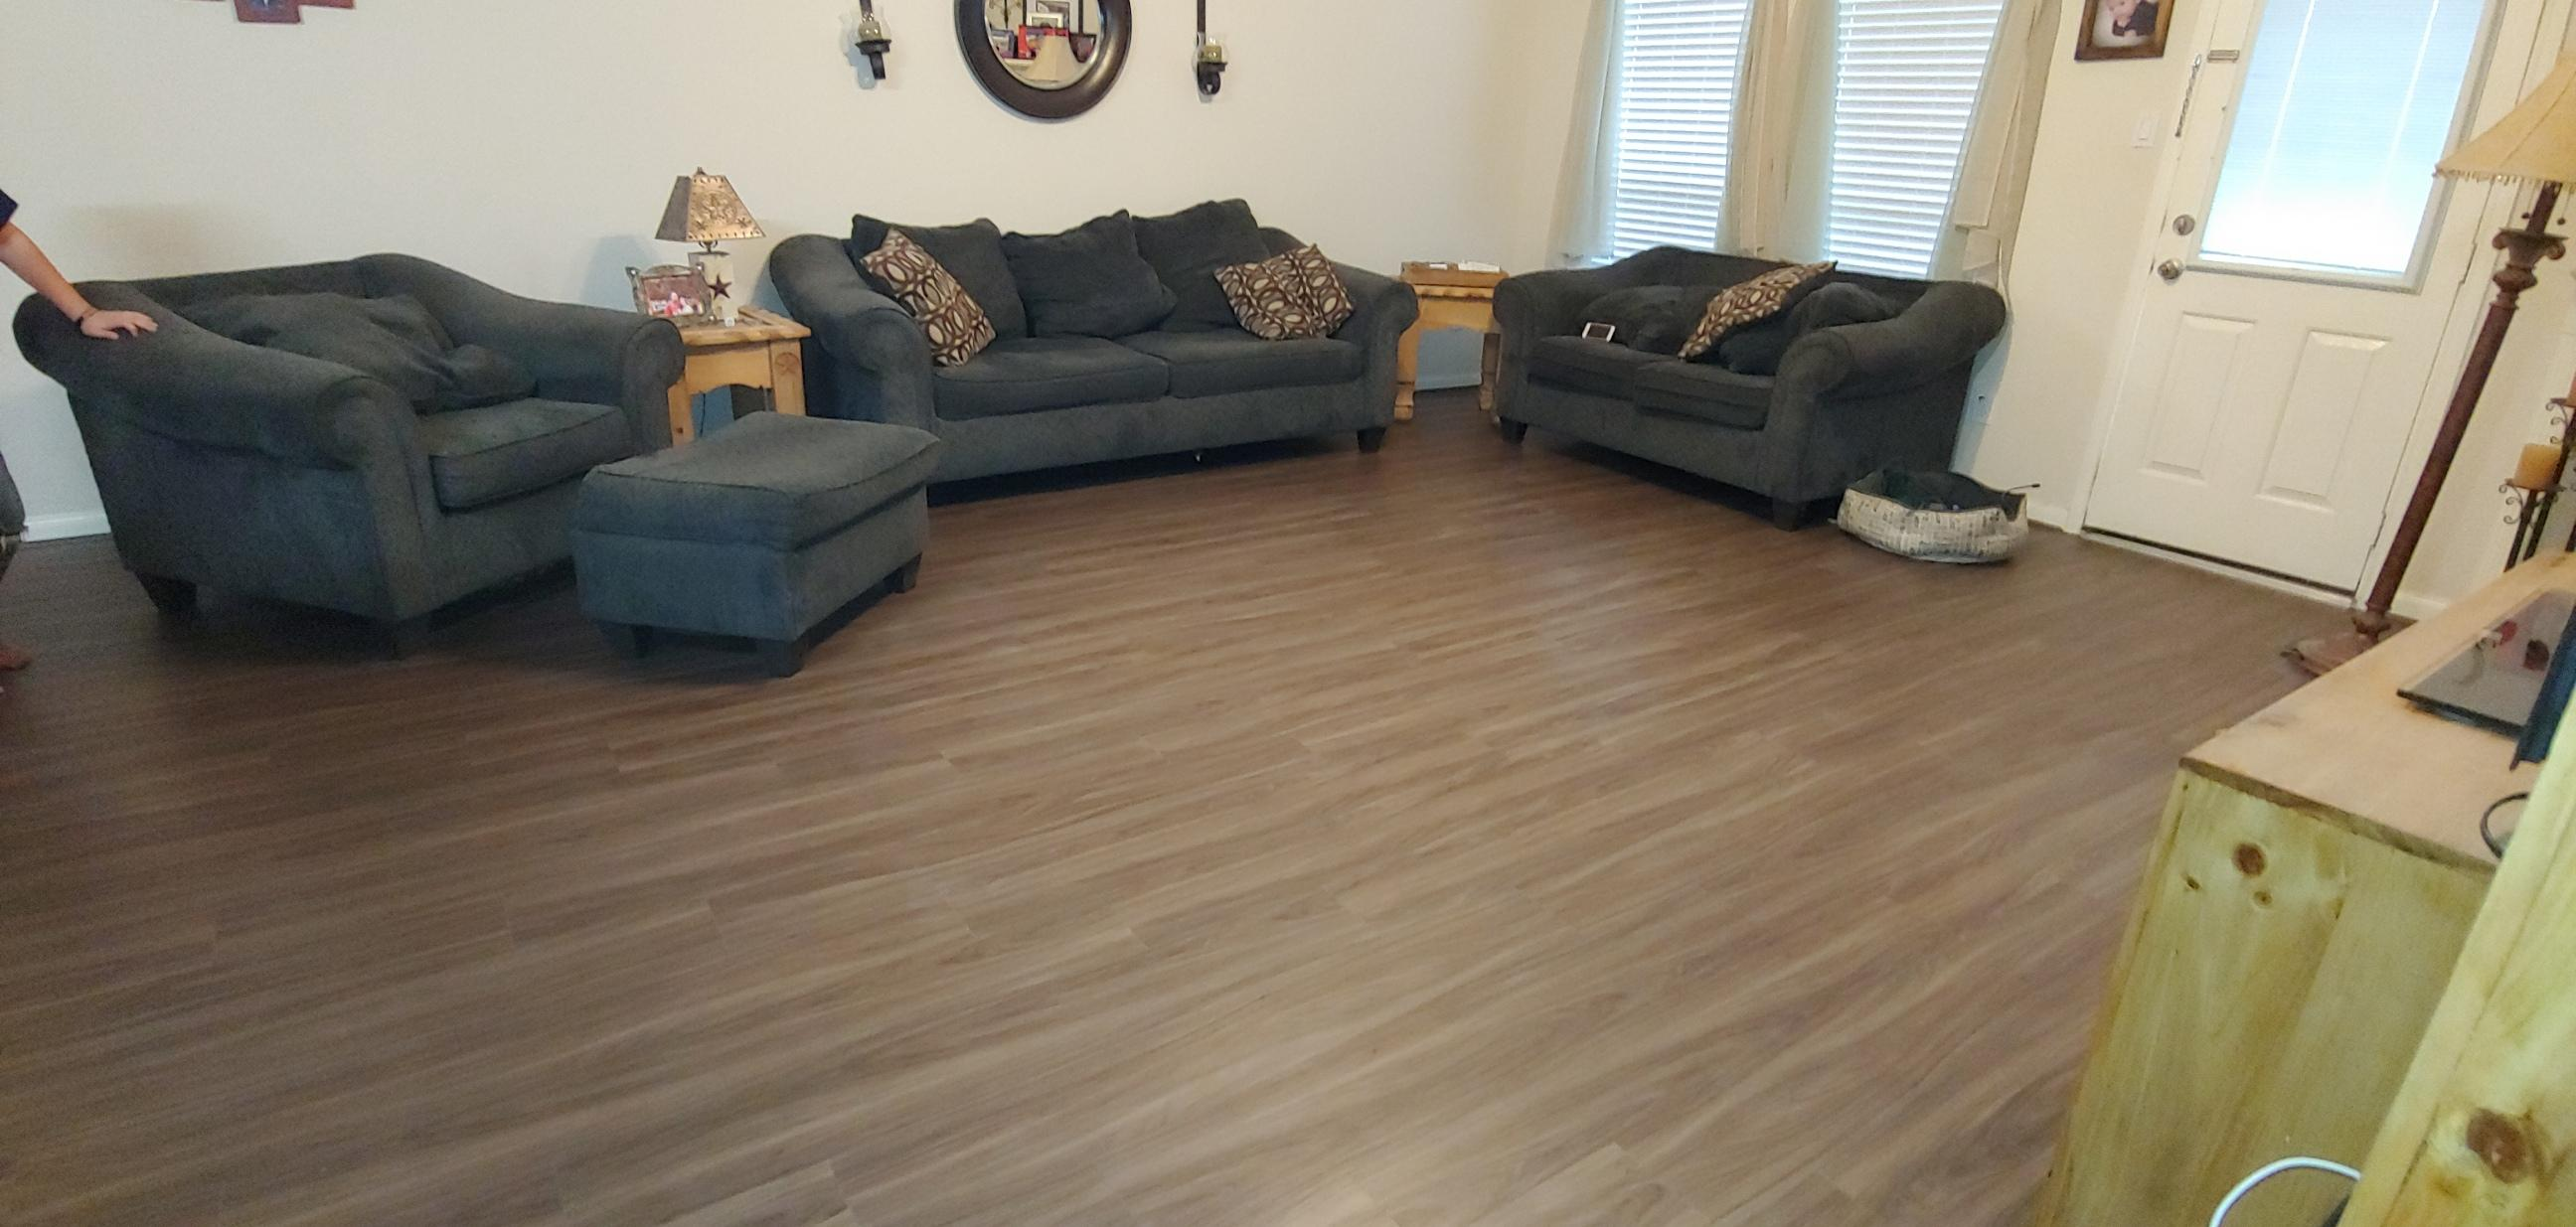 luxury vinyl plank flooring in home